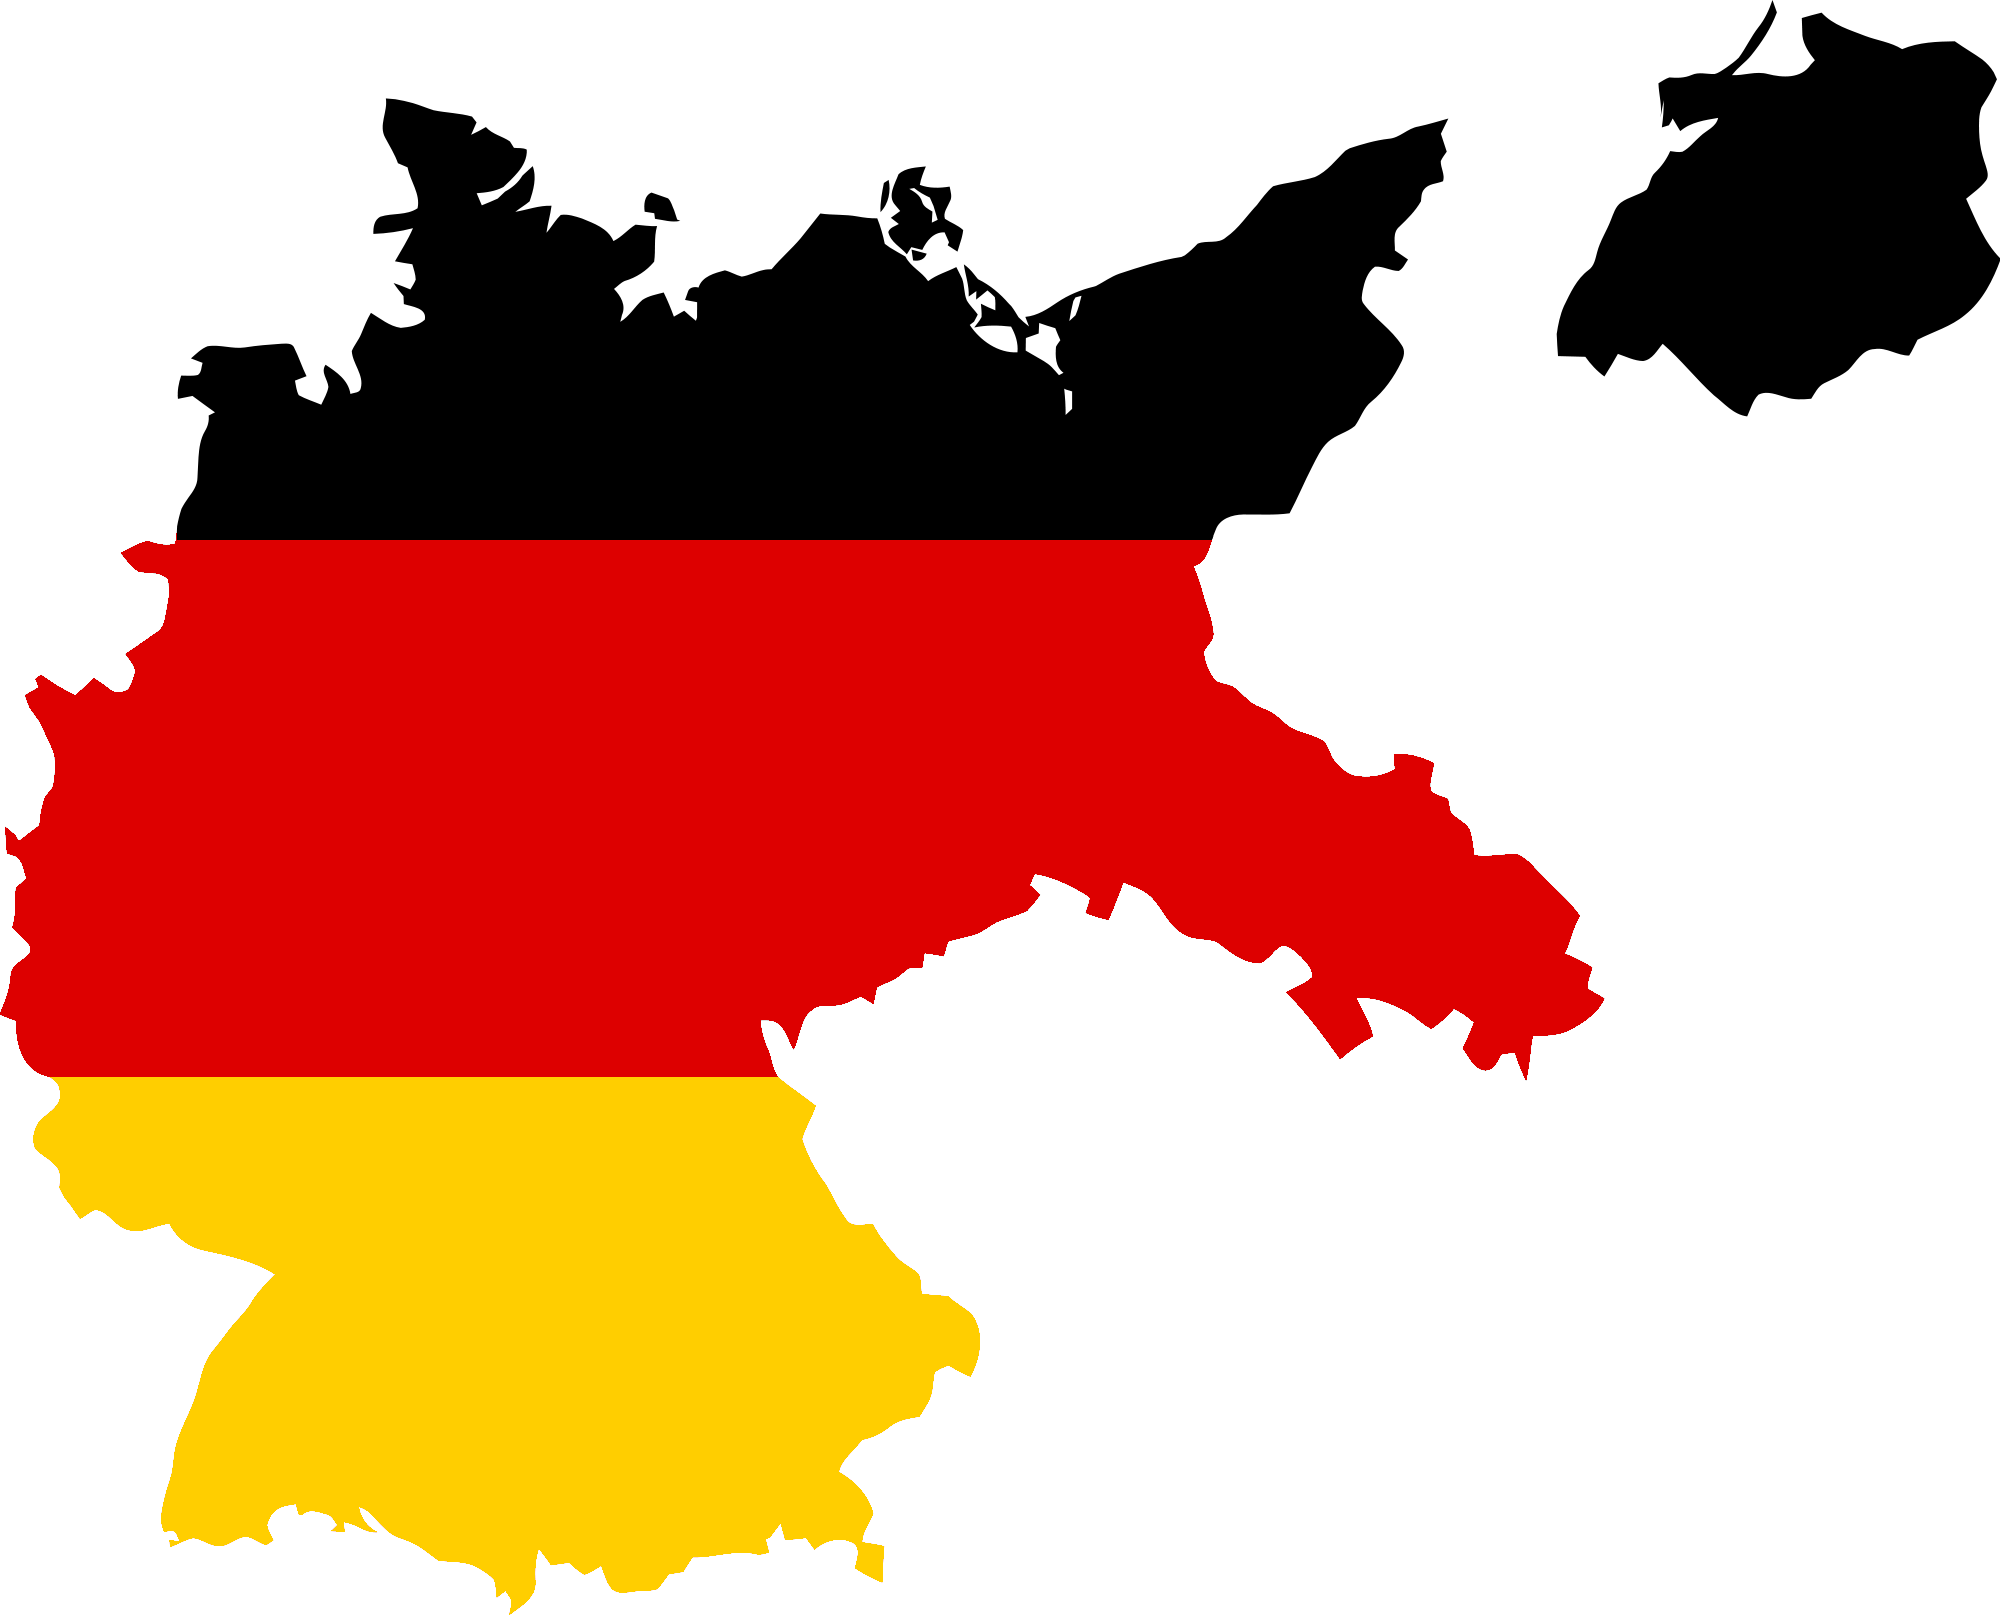 Cool germany map colouring pages pinterest flags german grunge flag wallpaper germany world wallpapers free backgrounds and wallpapers gumiabroncs Gallery